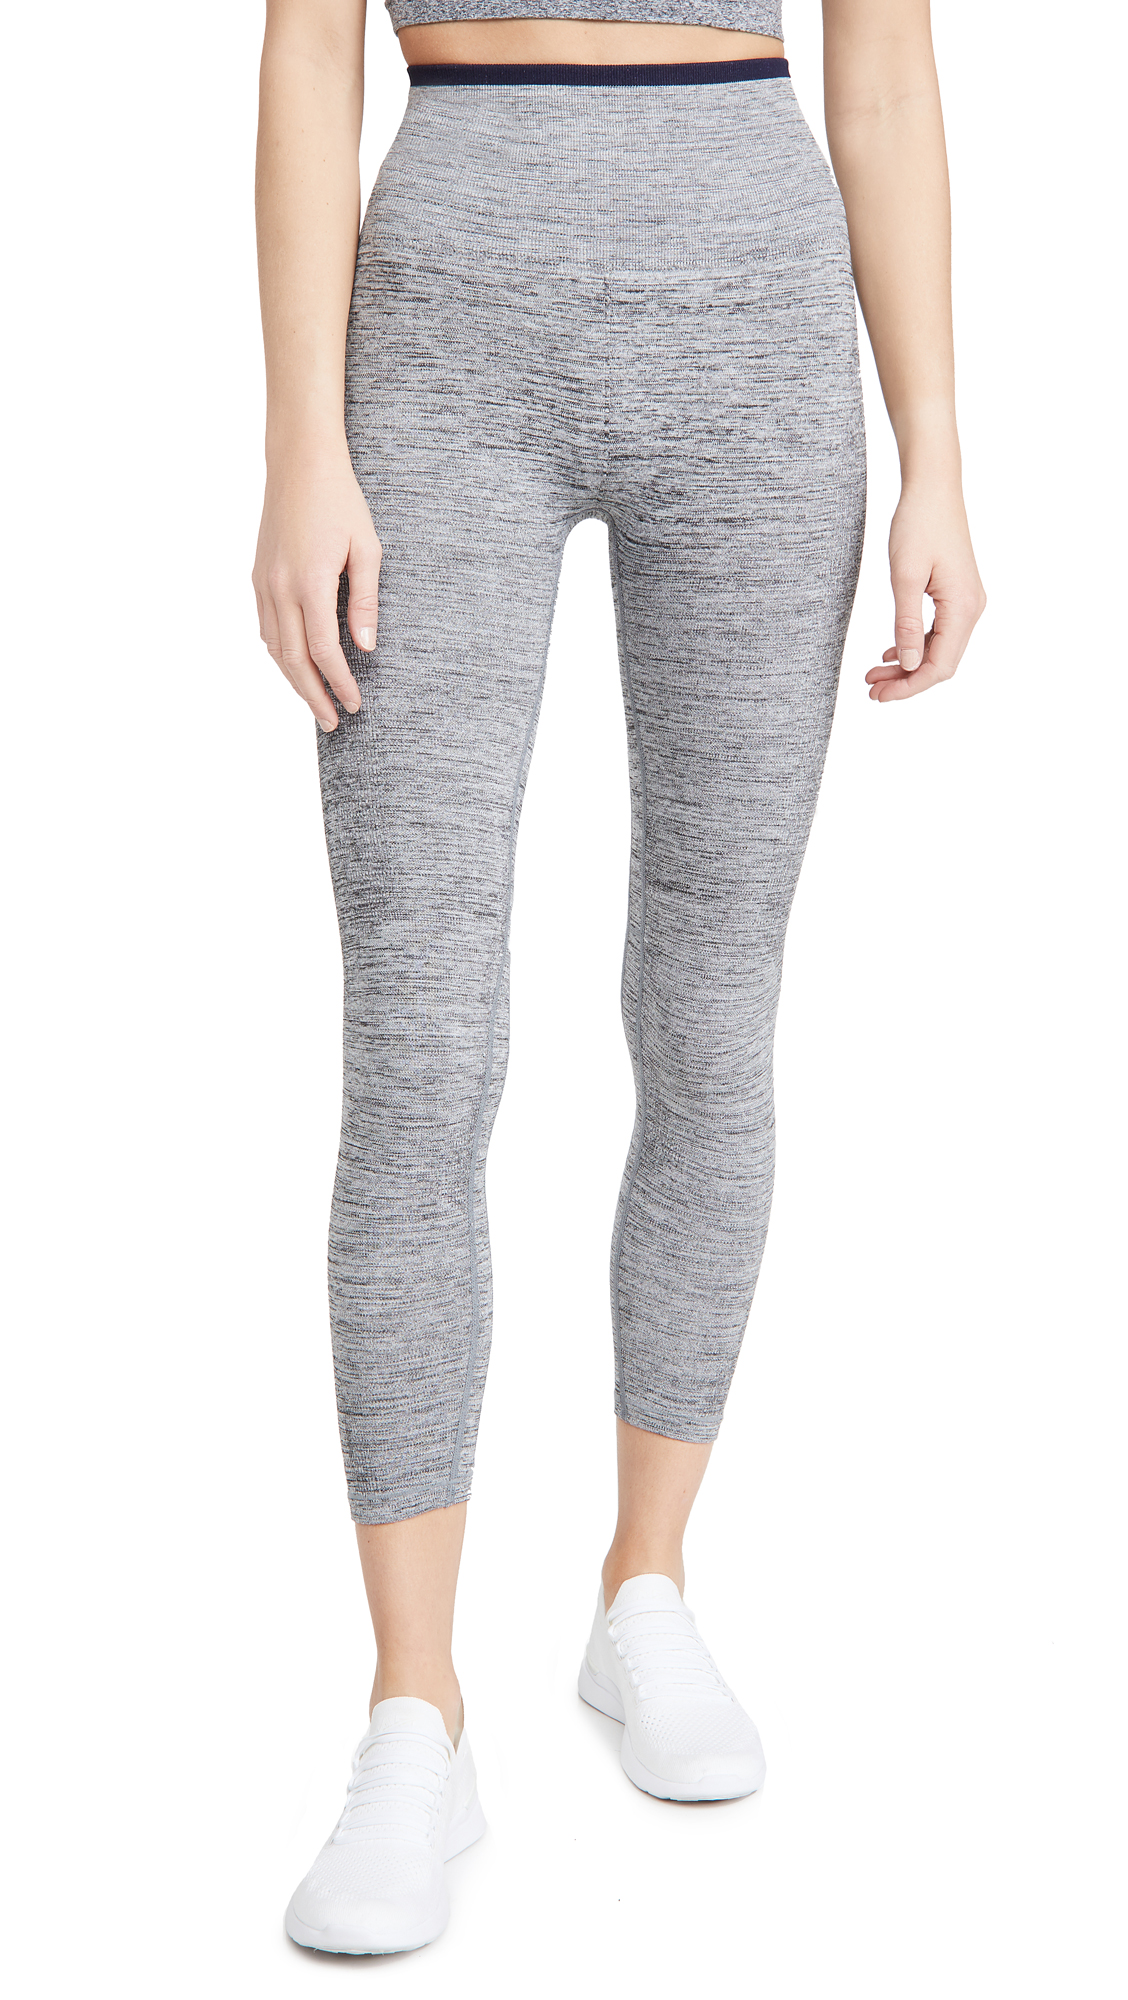 Splits59 Seamless High Waist 7/8 Leggings